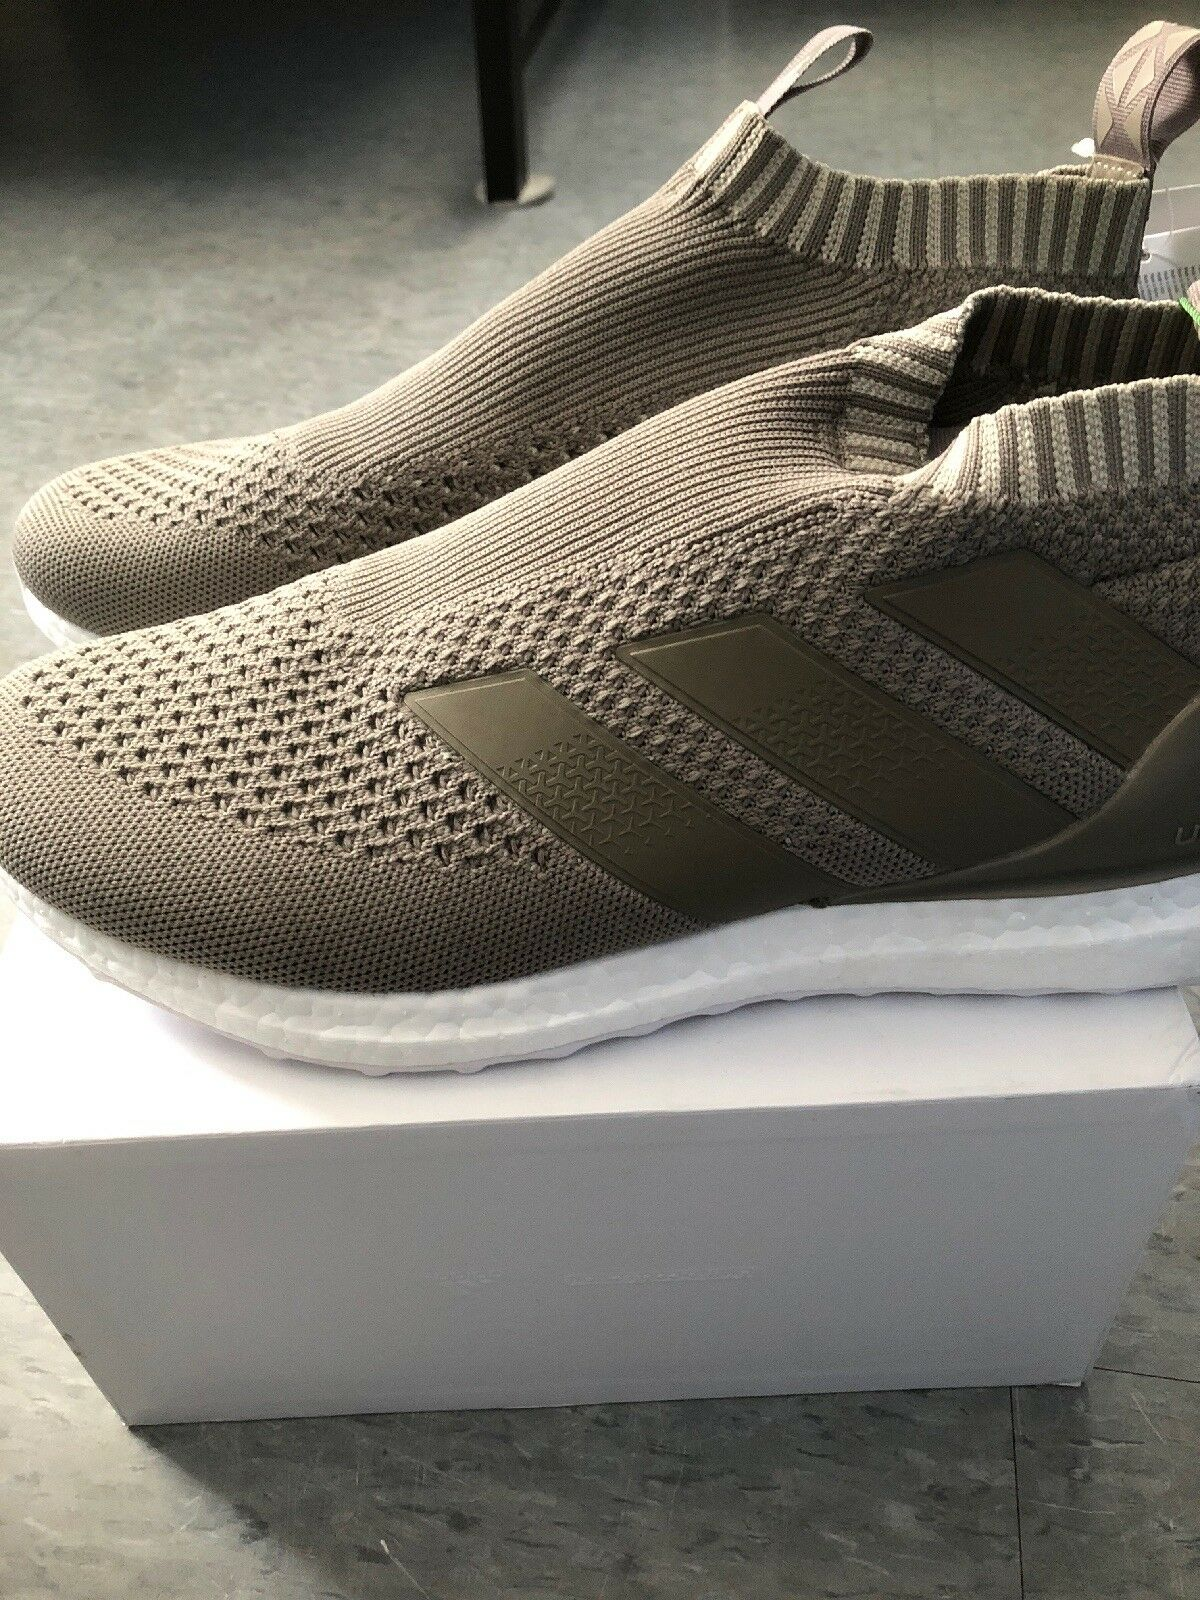 c405afd2c7a5e ace 16 purecontrol ultra boost 10.5 Adidas Size nreotd9469-Athletic Shoes